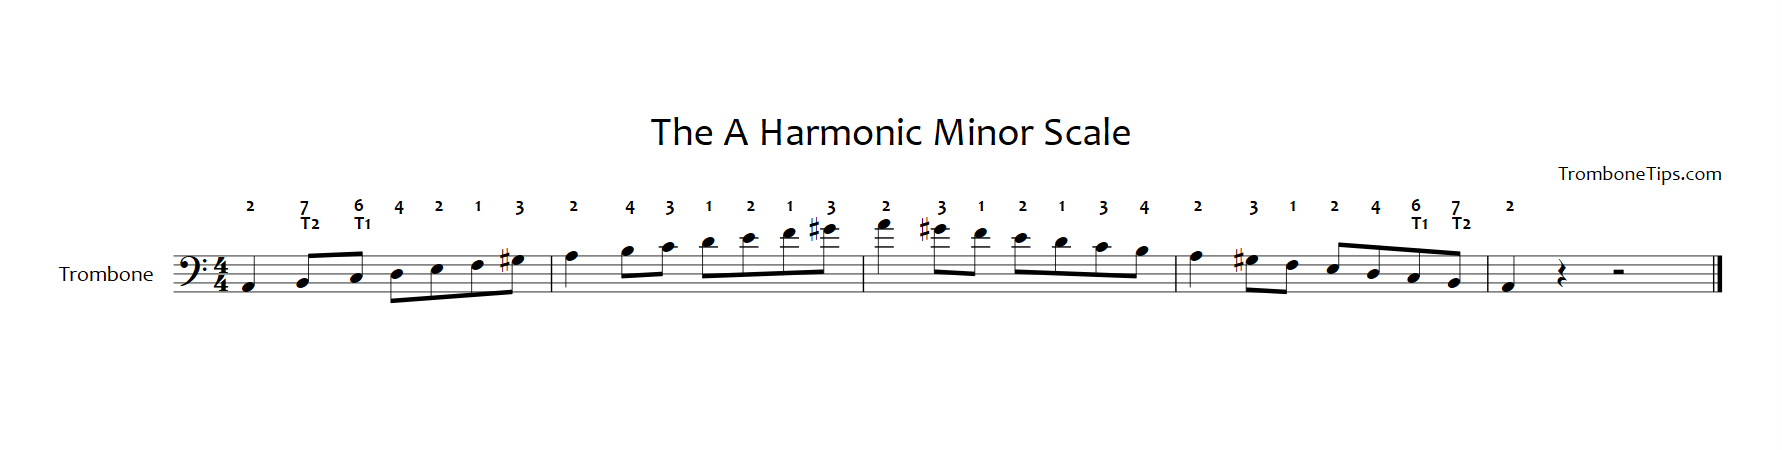 How to Play an A Minor Scale on the Piano